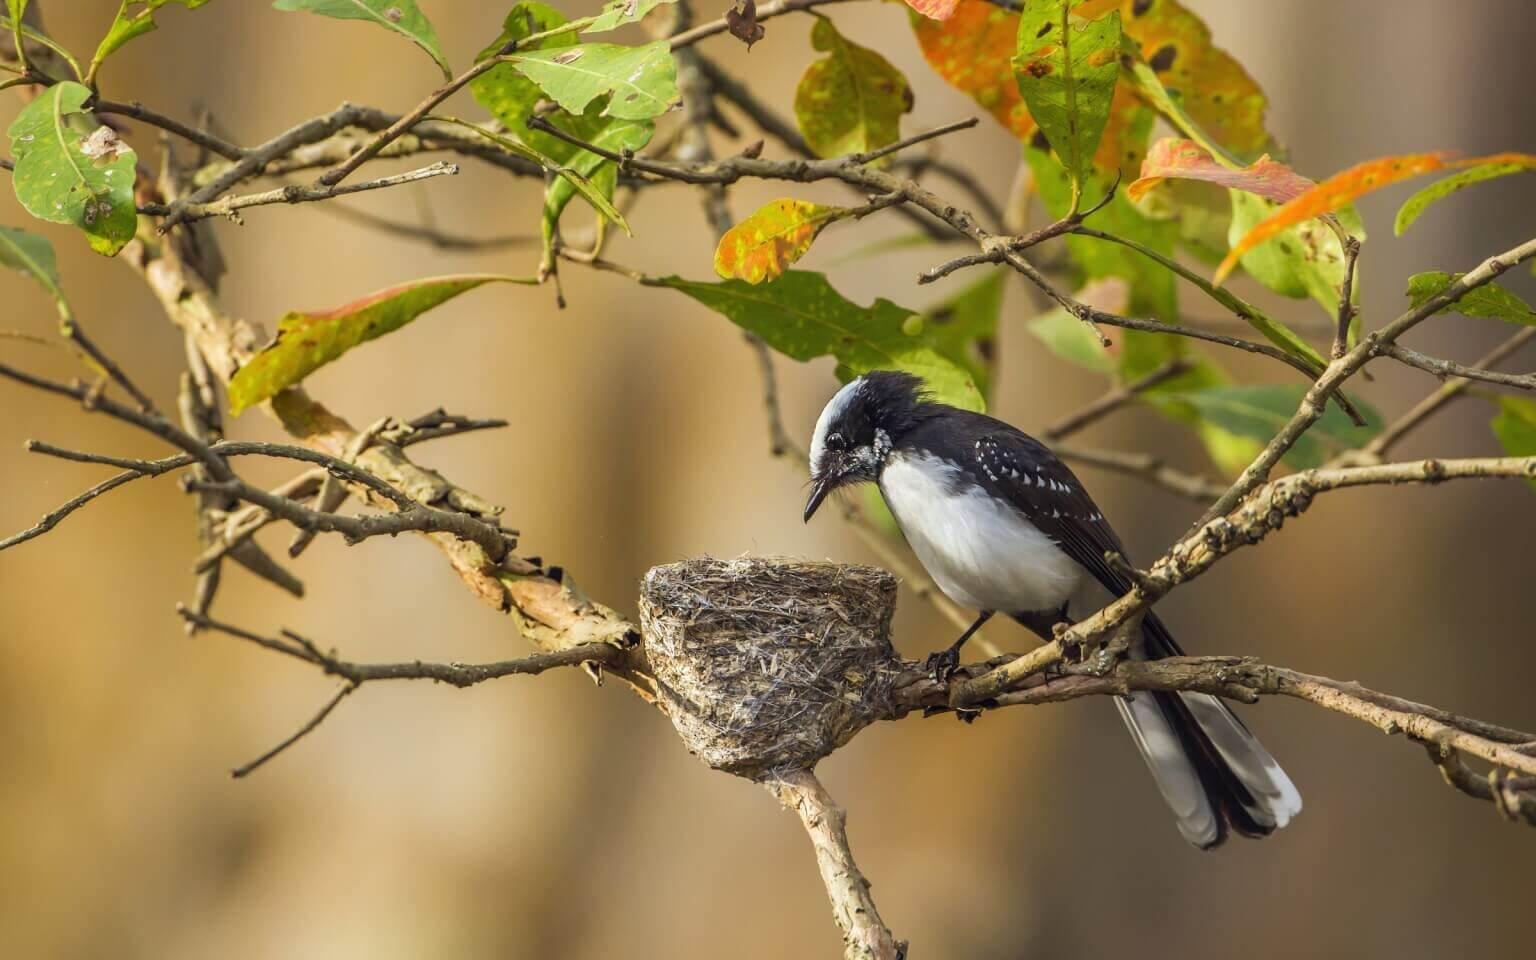 Image of White-browed fantail flycatcher in Udawalawe